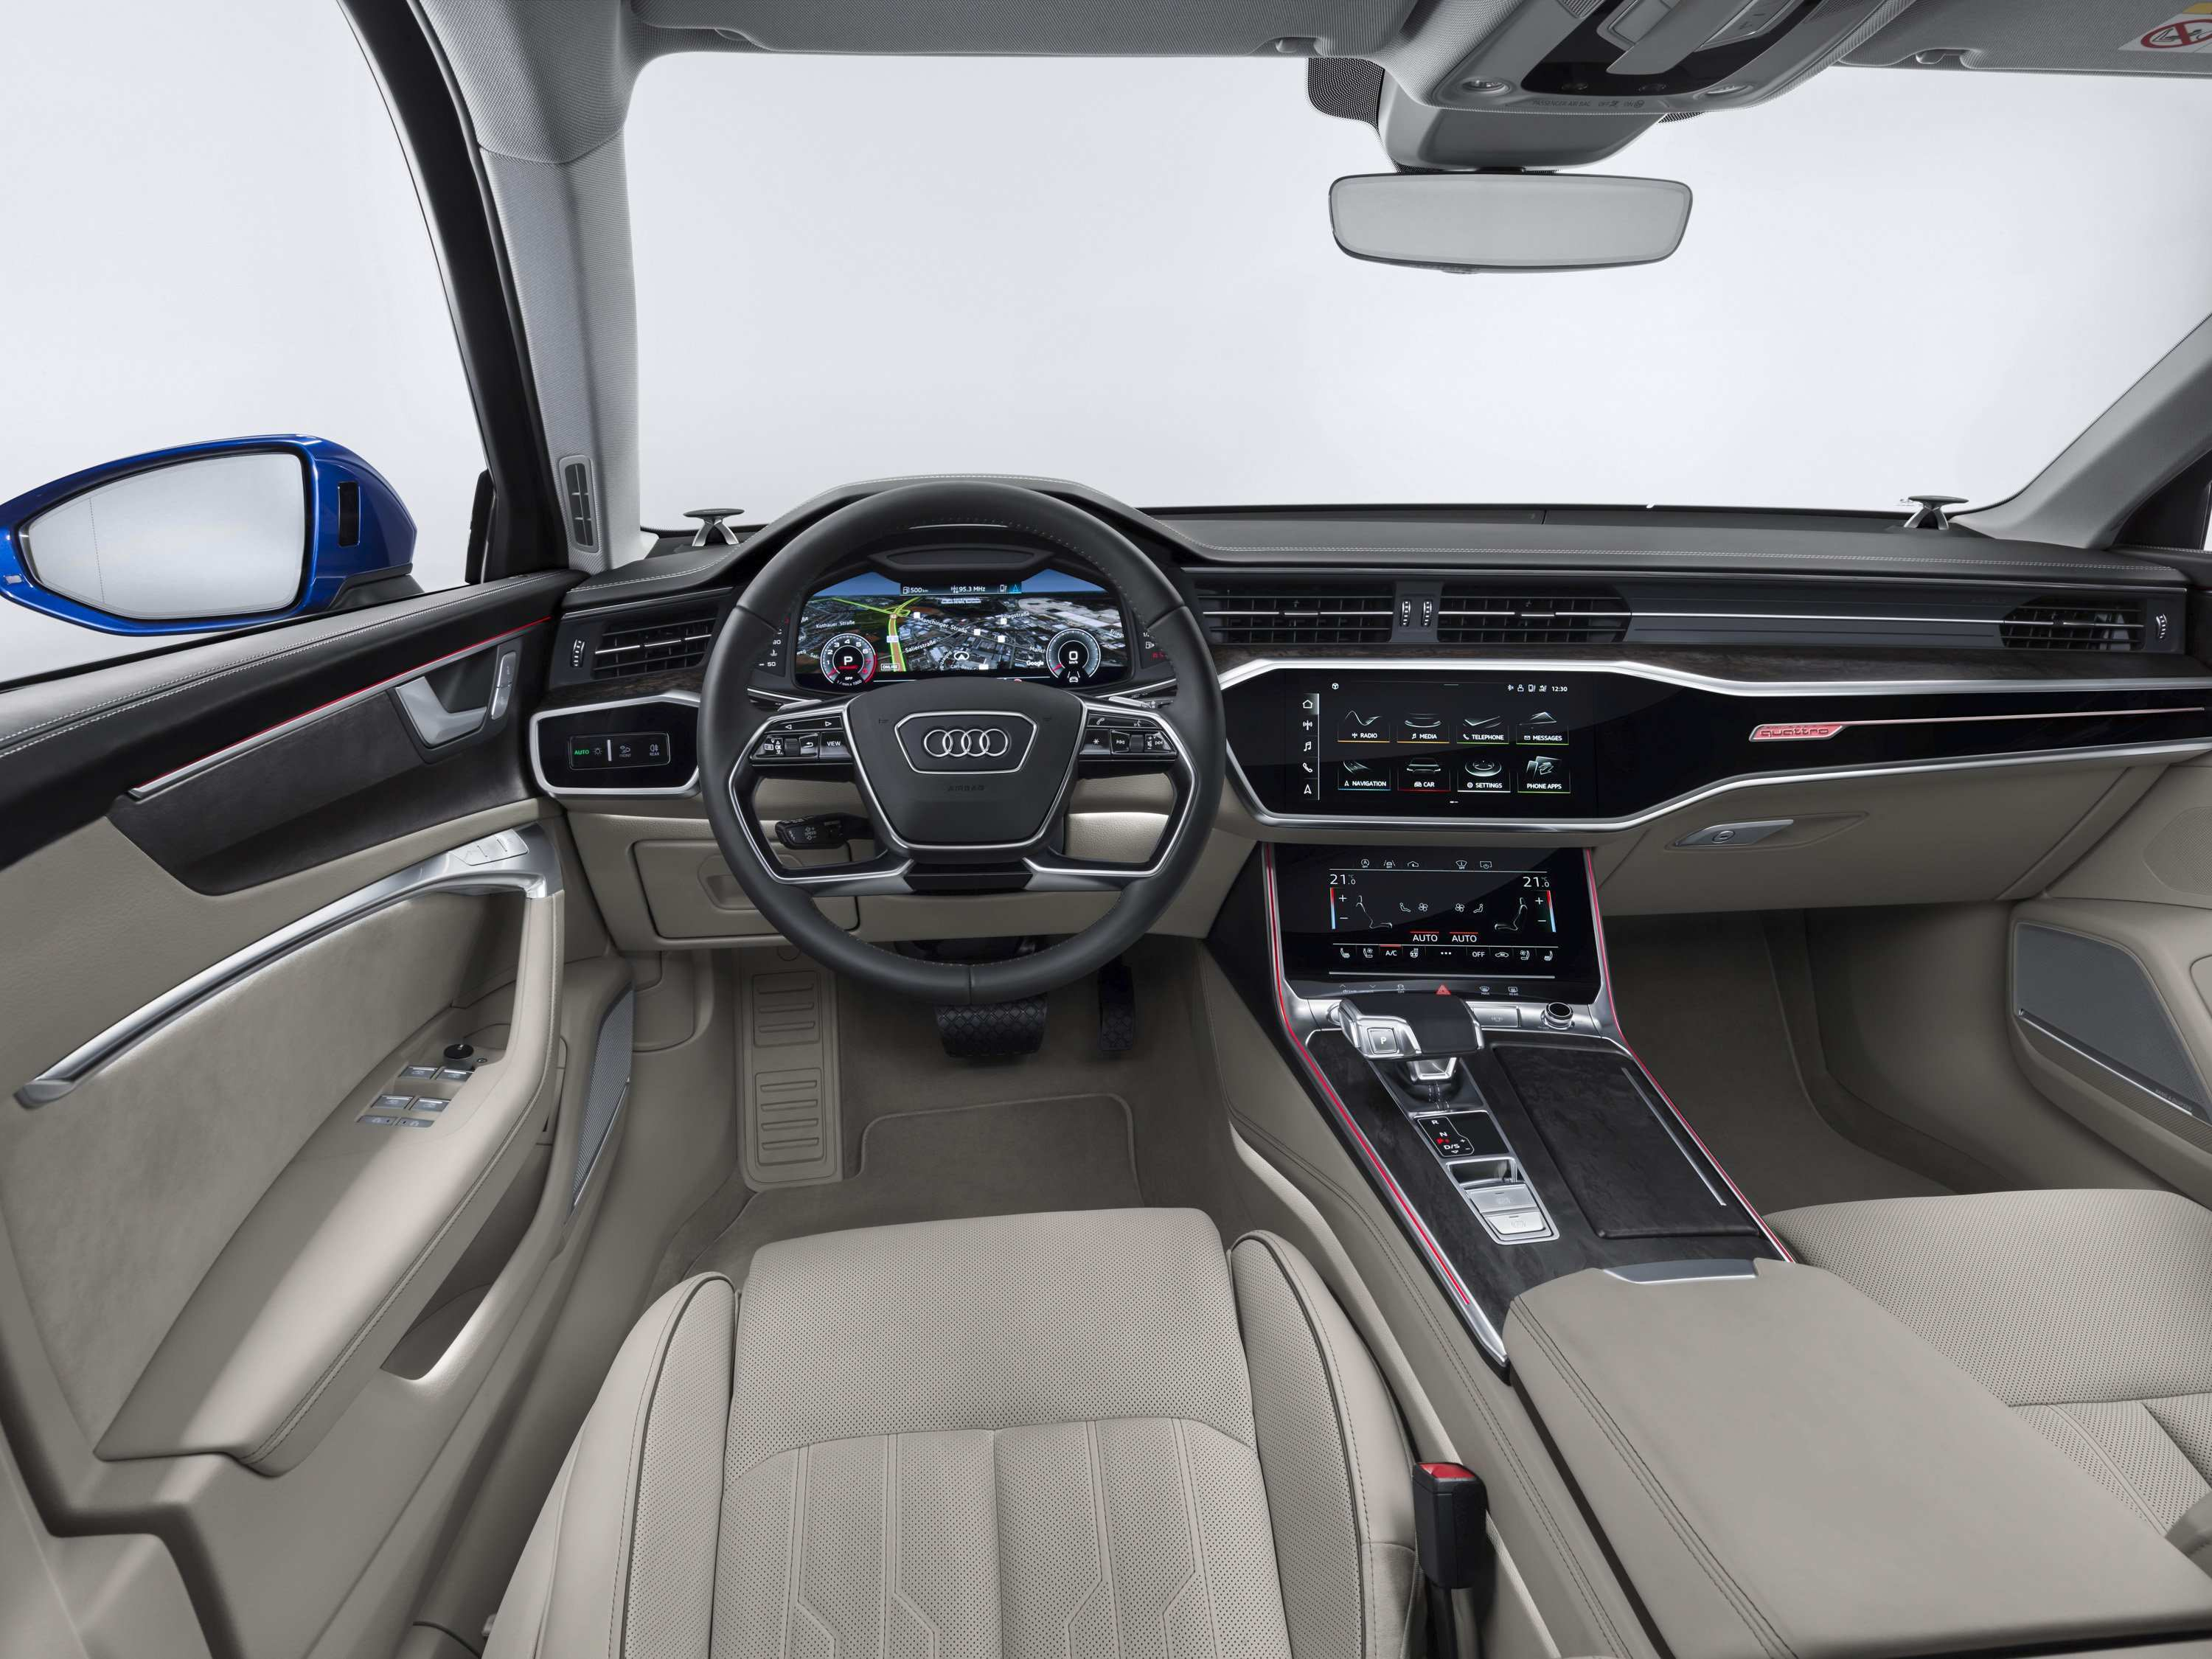 59 All New Audi A4 2020 Interior Release